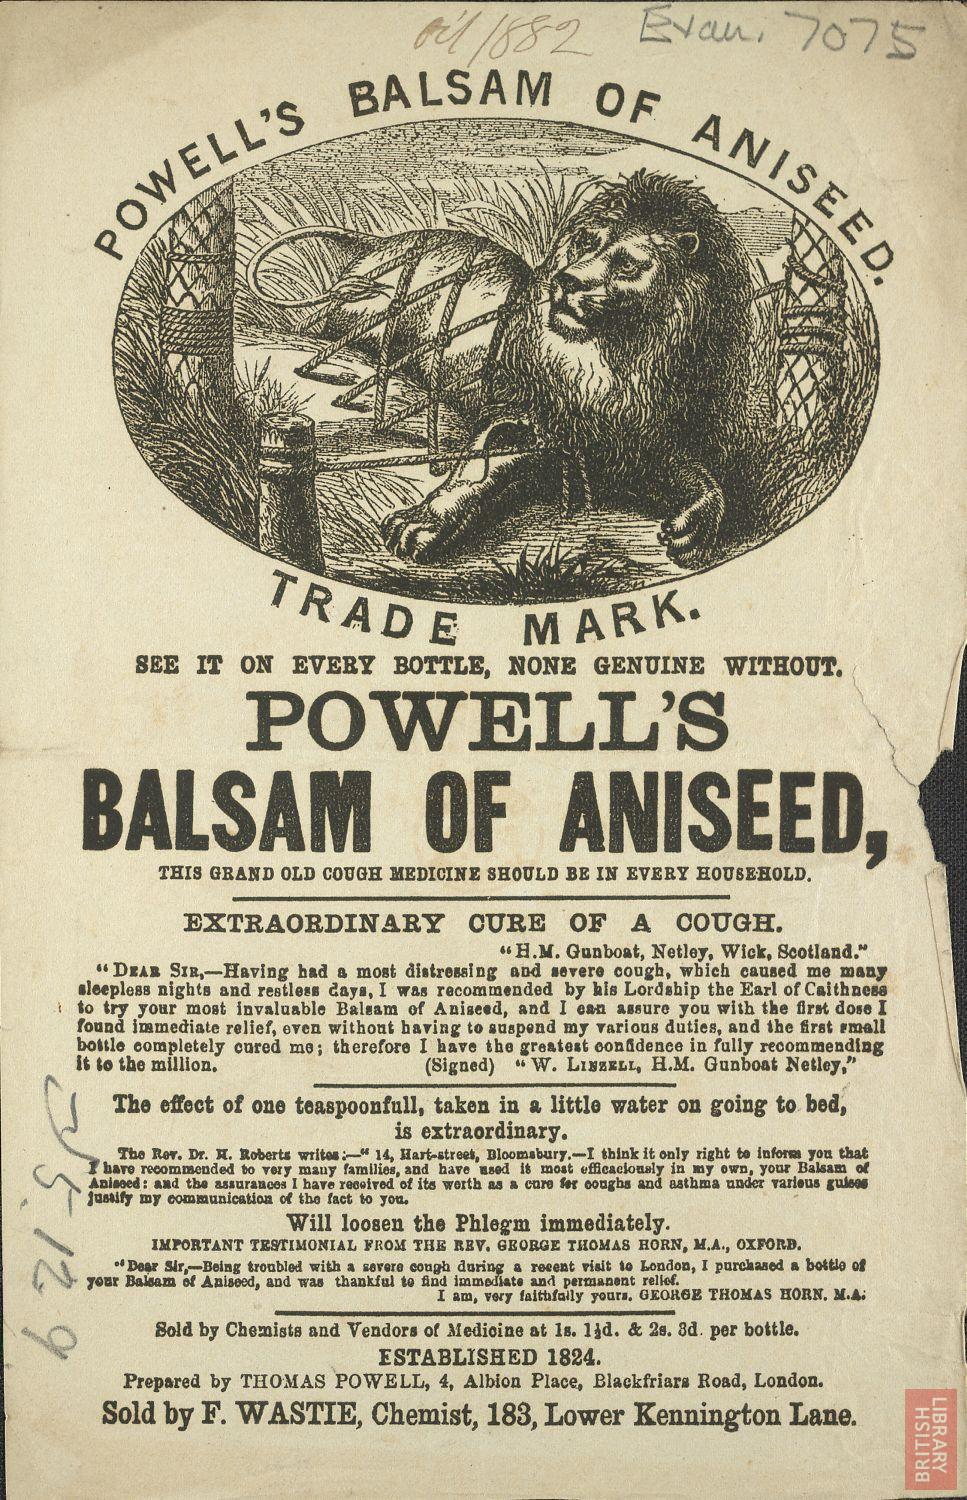 Advertisement for Powell's basalm of aniseed